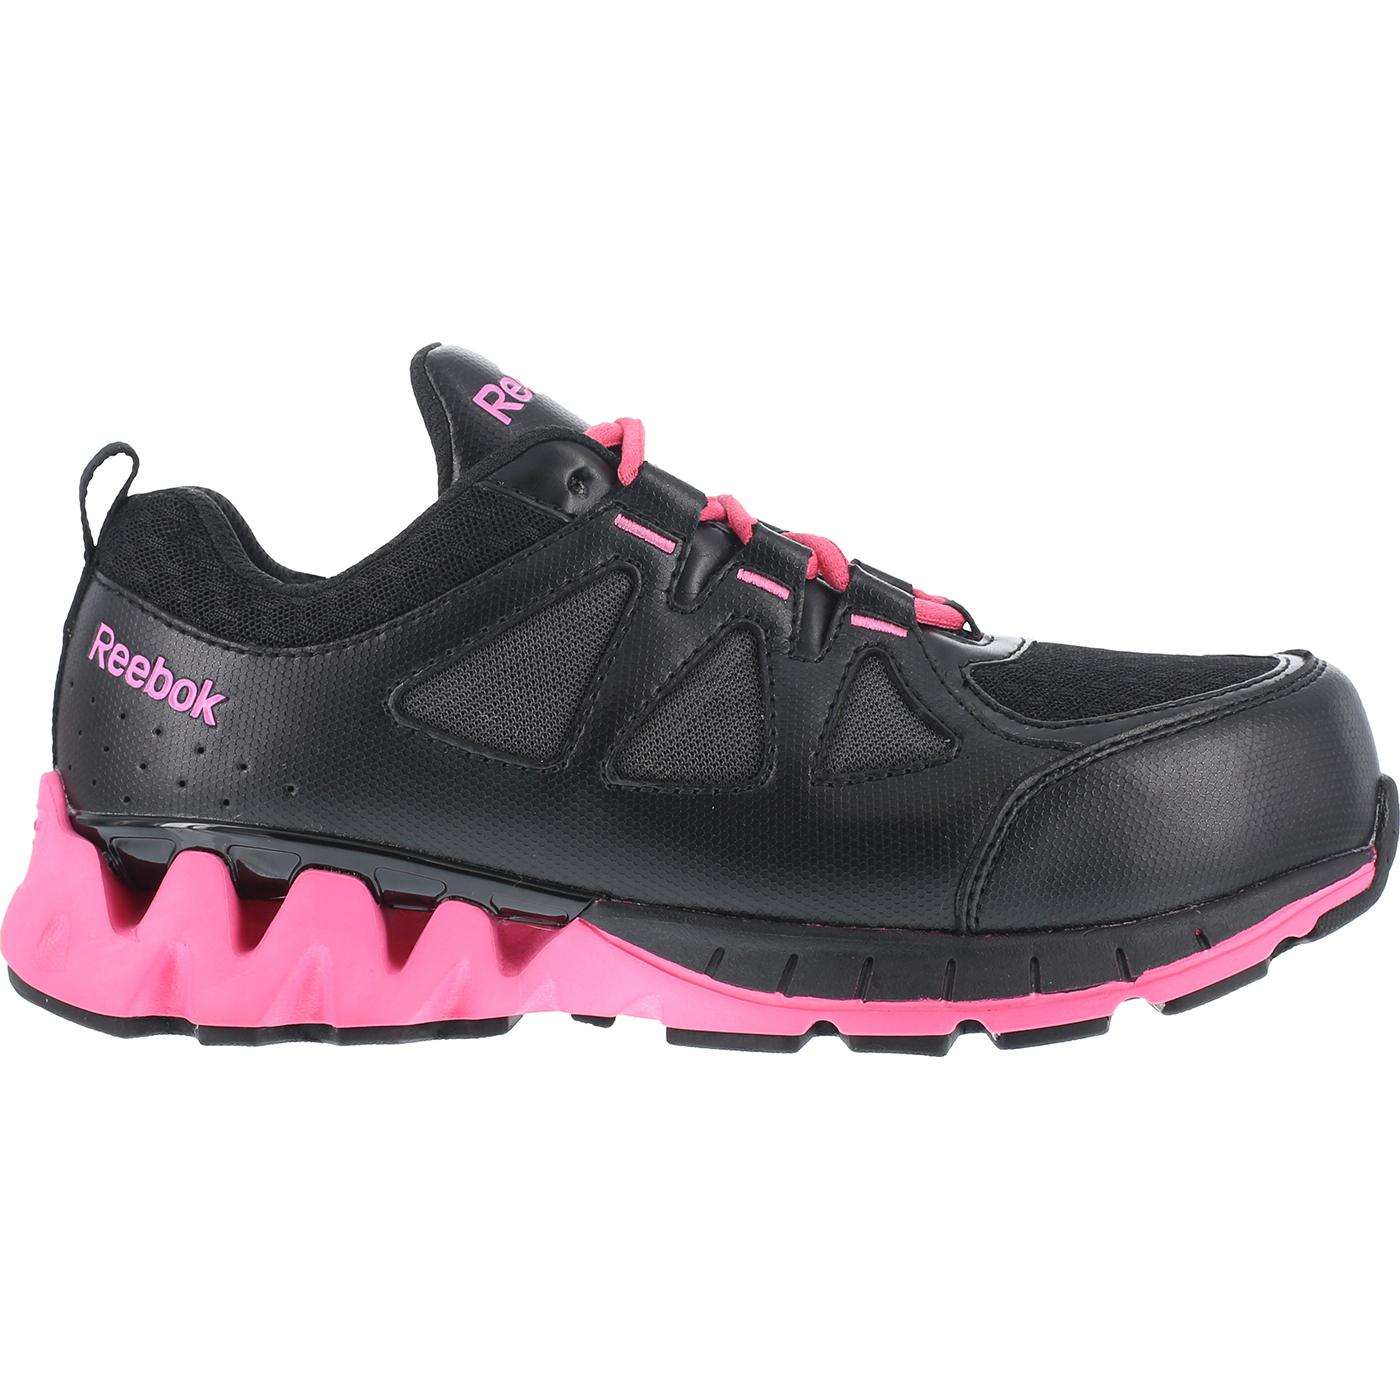 ... Zigkick Work Women s Composite Toe Work Athletic Oxford c2b6a5f4d